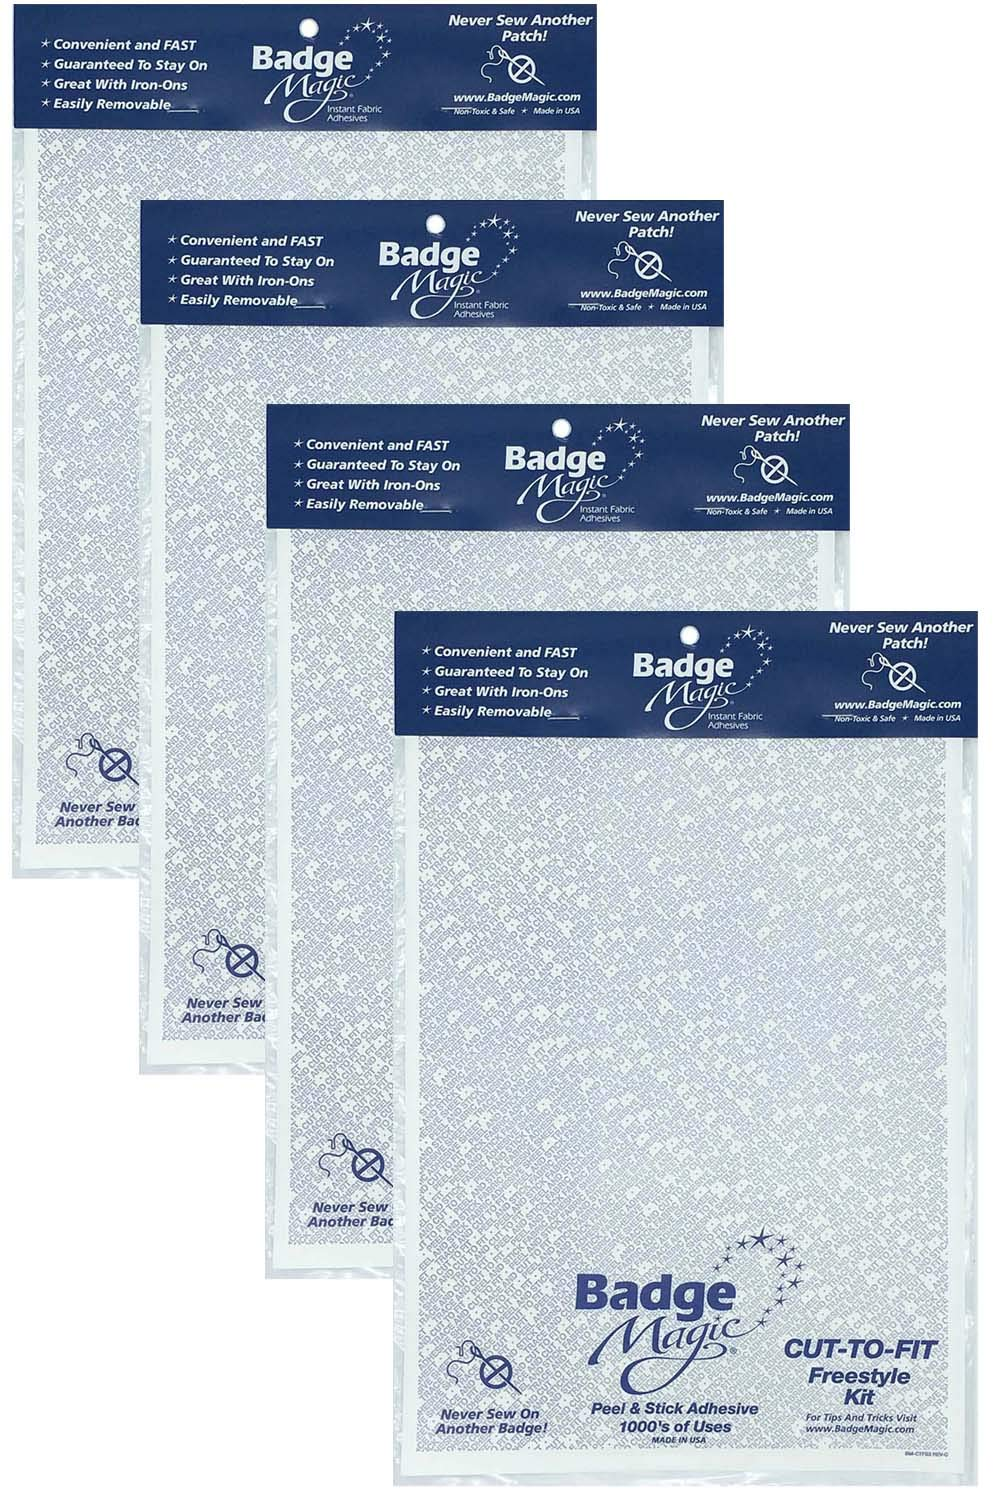 Badge Magic Cut to Fit Freestyle Patch Adhesive Kit (4-Pack) by Badge Magic